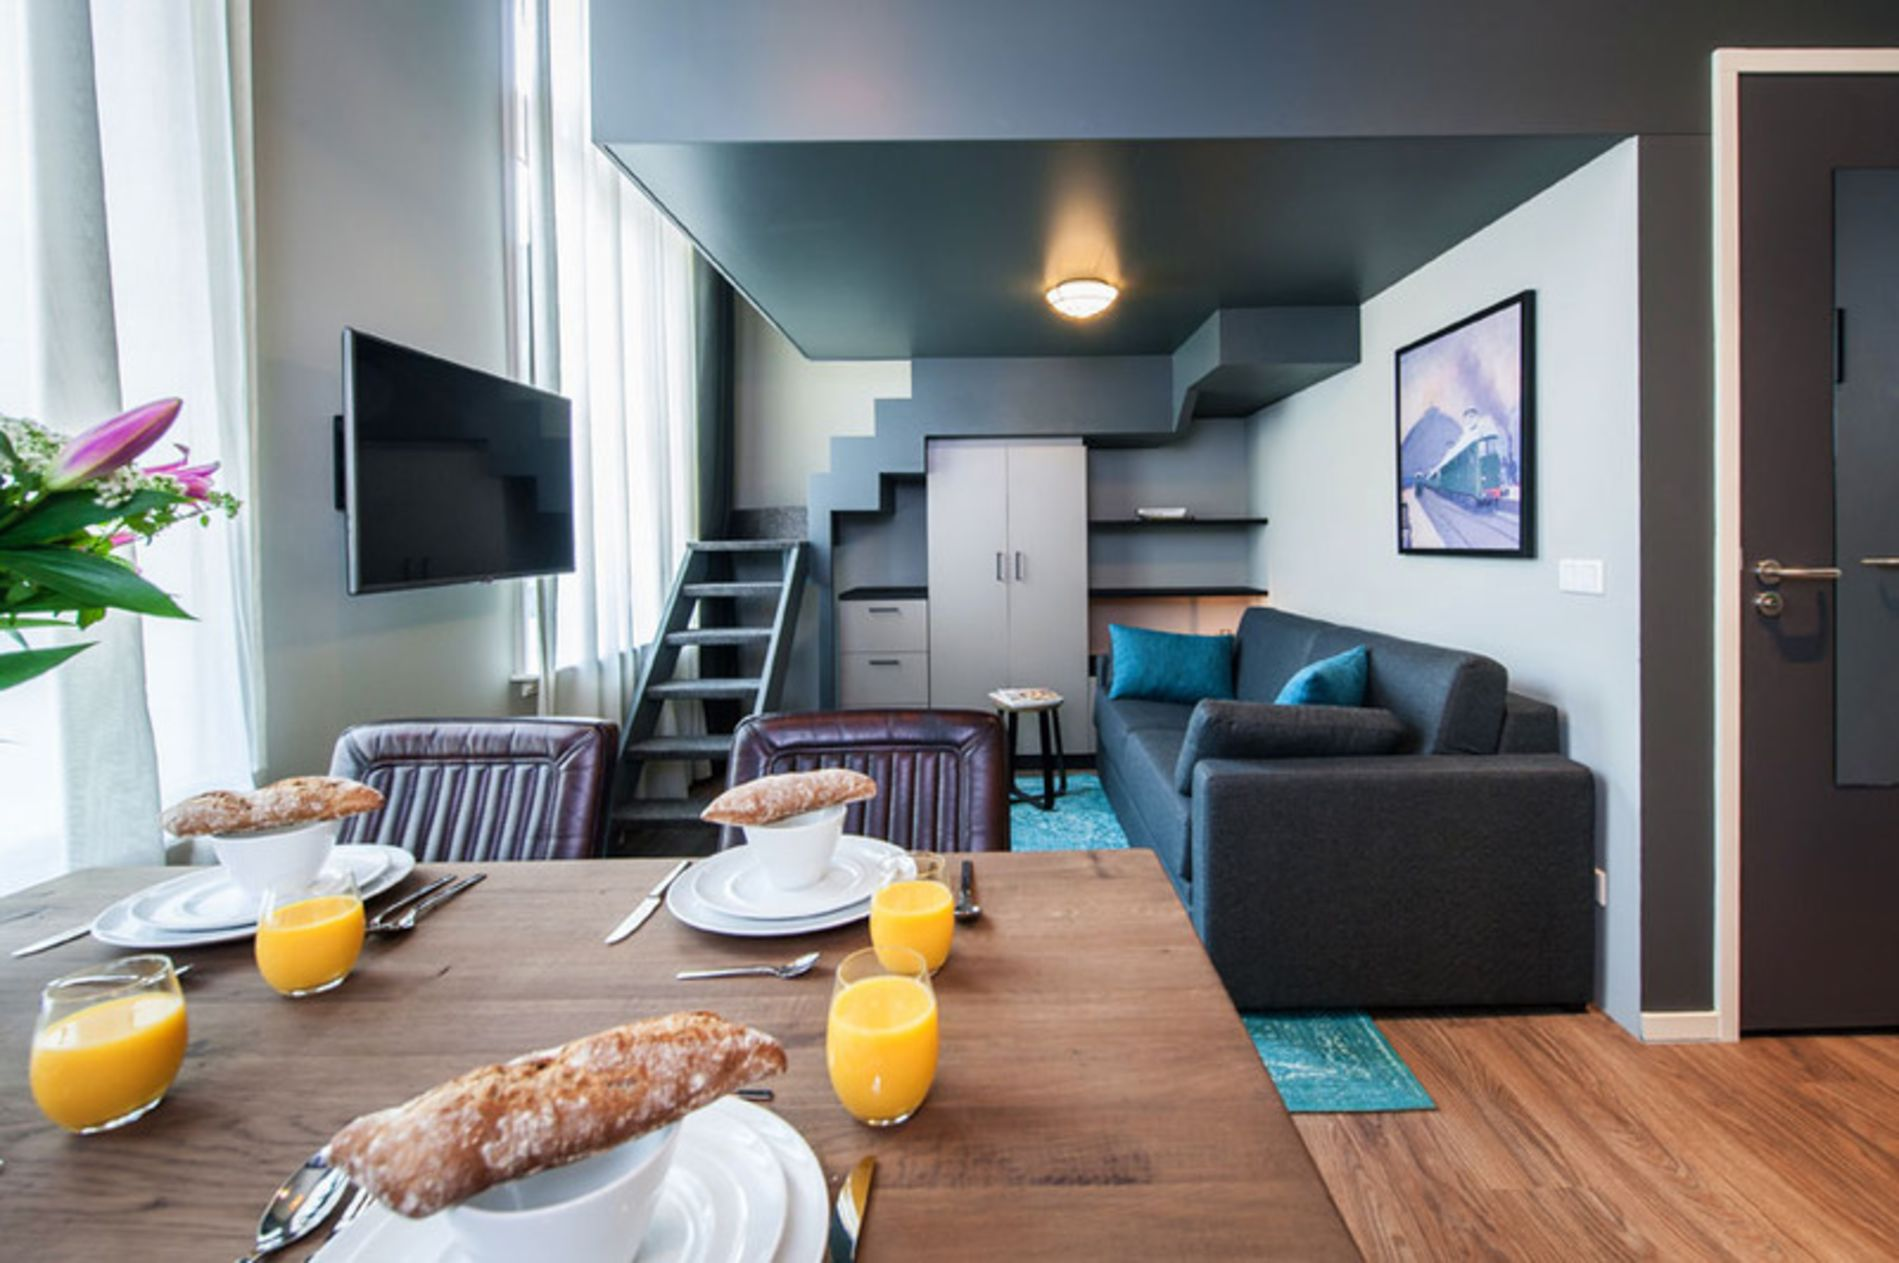 Studio serviced apartment in Amsterdam's Eastern Islands